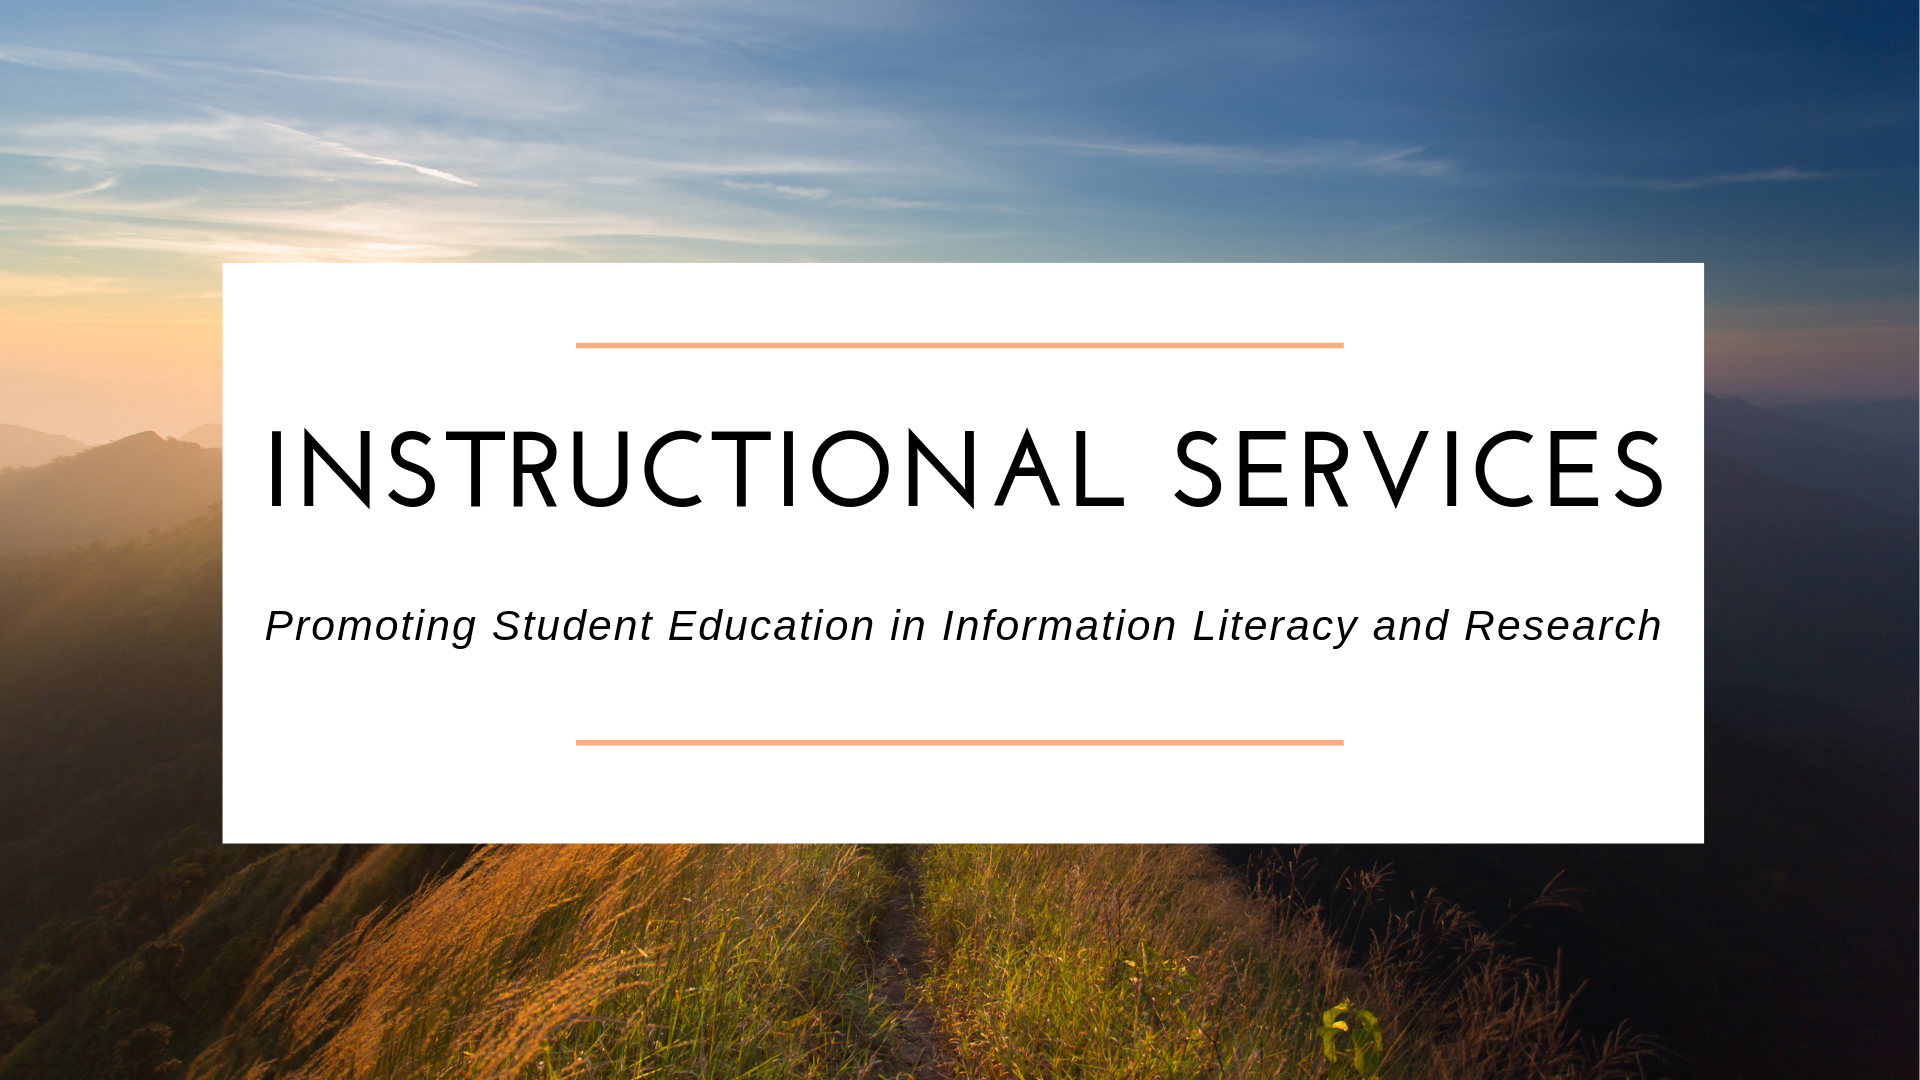 Instructional Services Header Image - Mountains and Sky